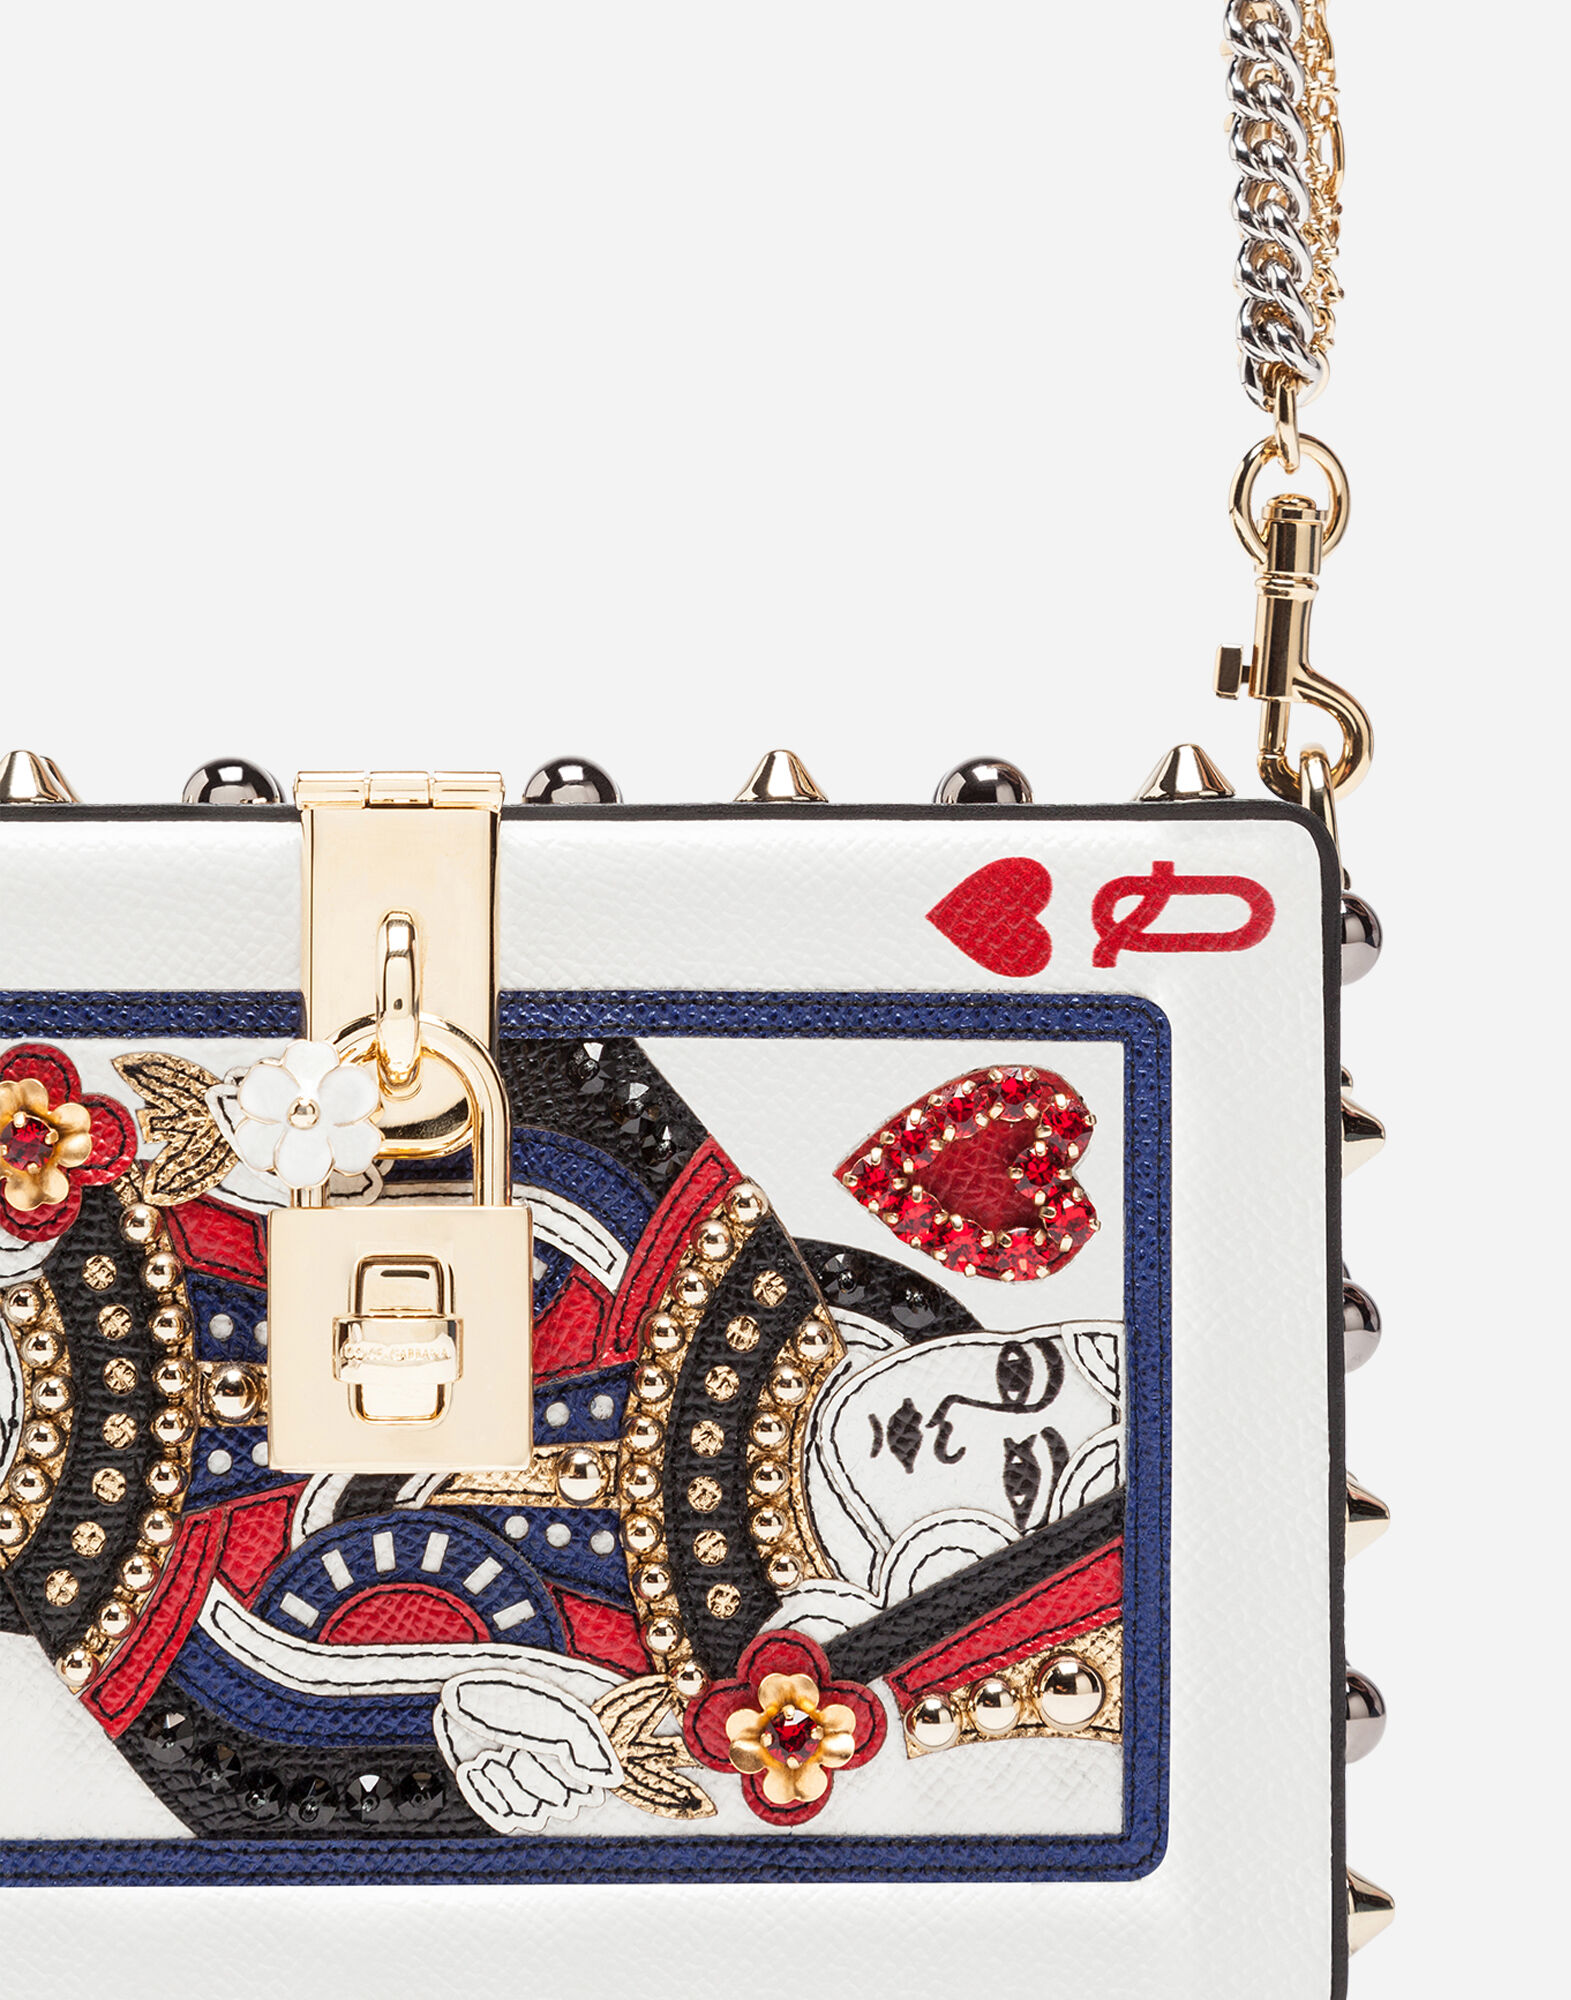 PRINTED LEATHER DOLCE BOX BAG WITH APPLIQUÉ